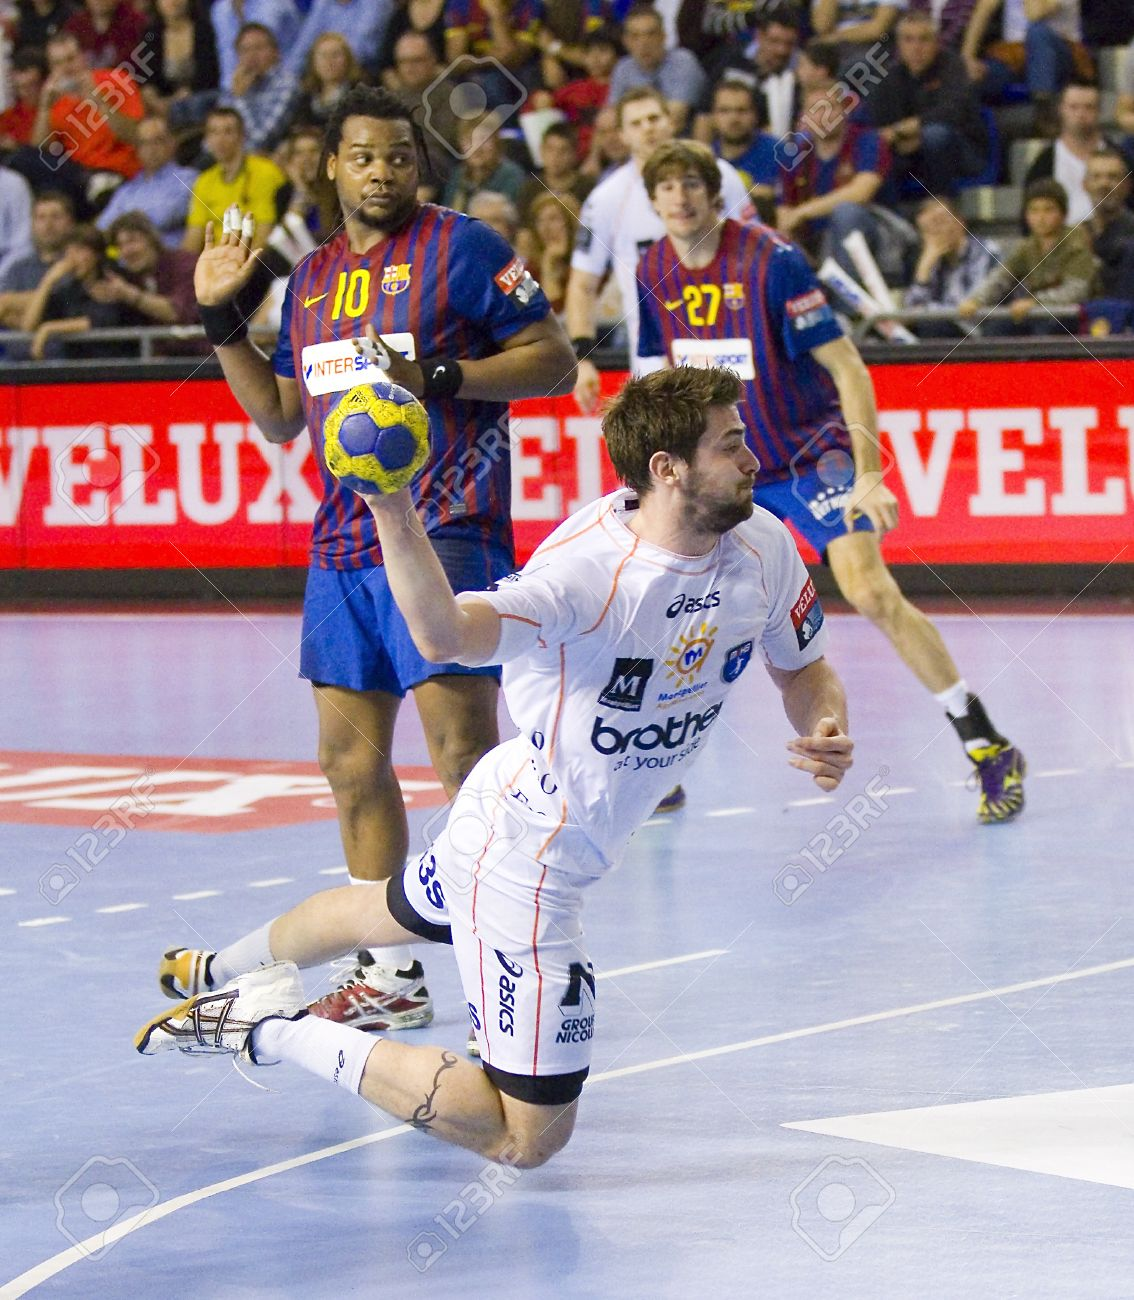 913eca915b1 BARCELONA - MARCH 25  Nikola Karabatic in action during EHF Champions  League match between FC